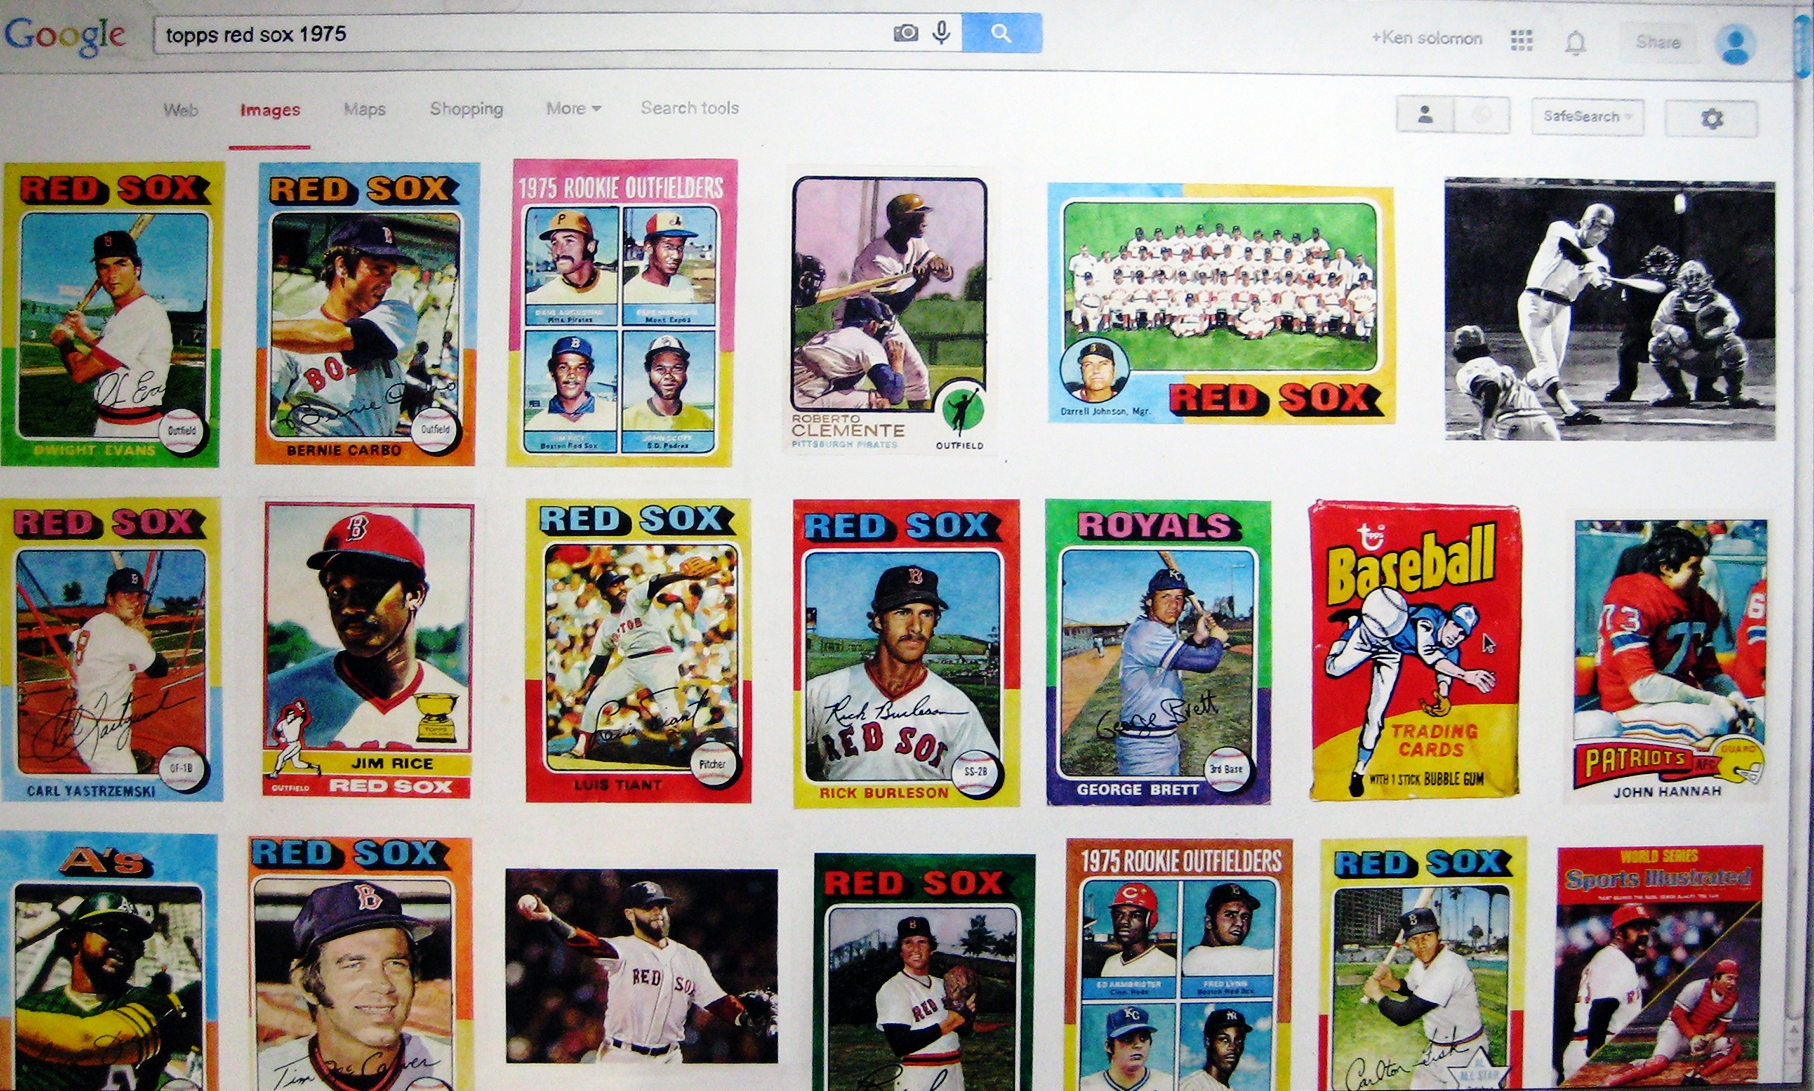 google portrait - topps 1975 red  sox.jpg